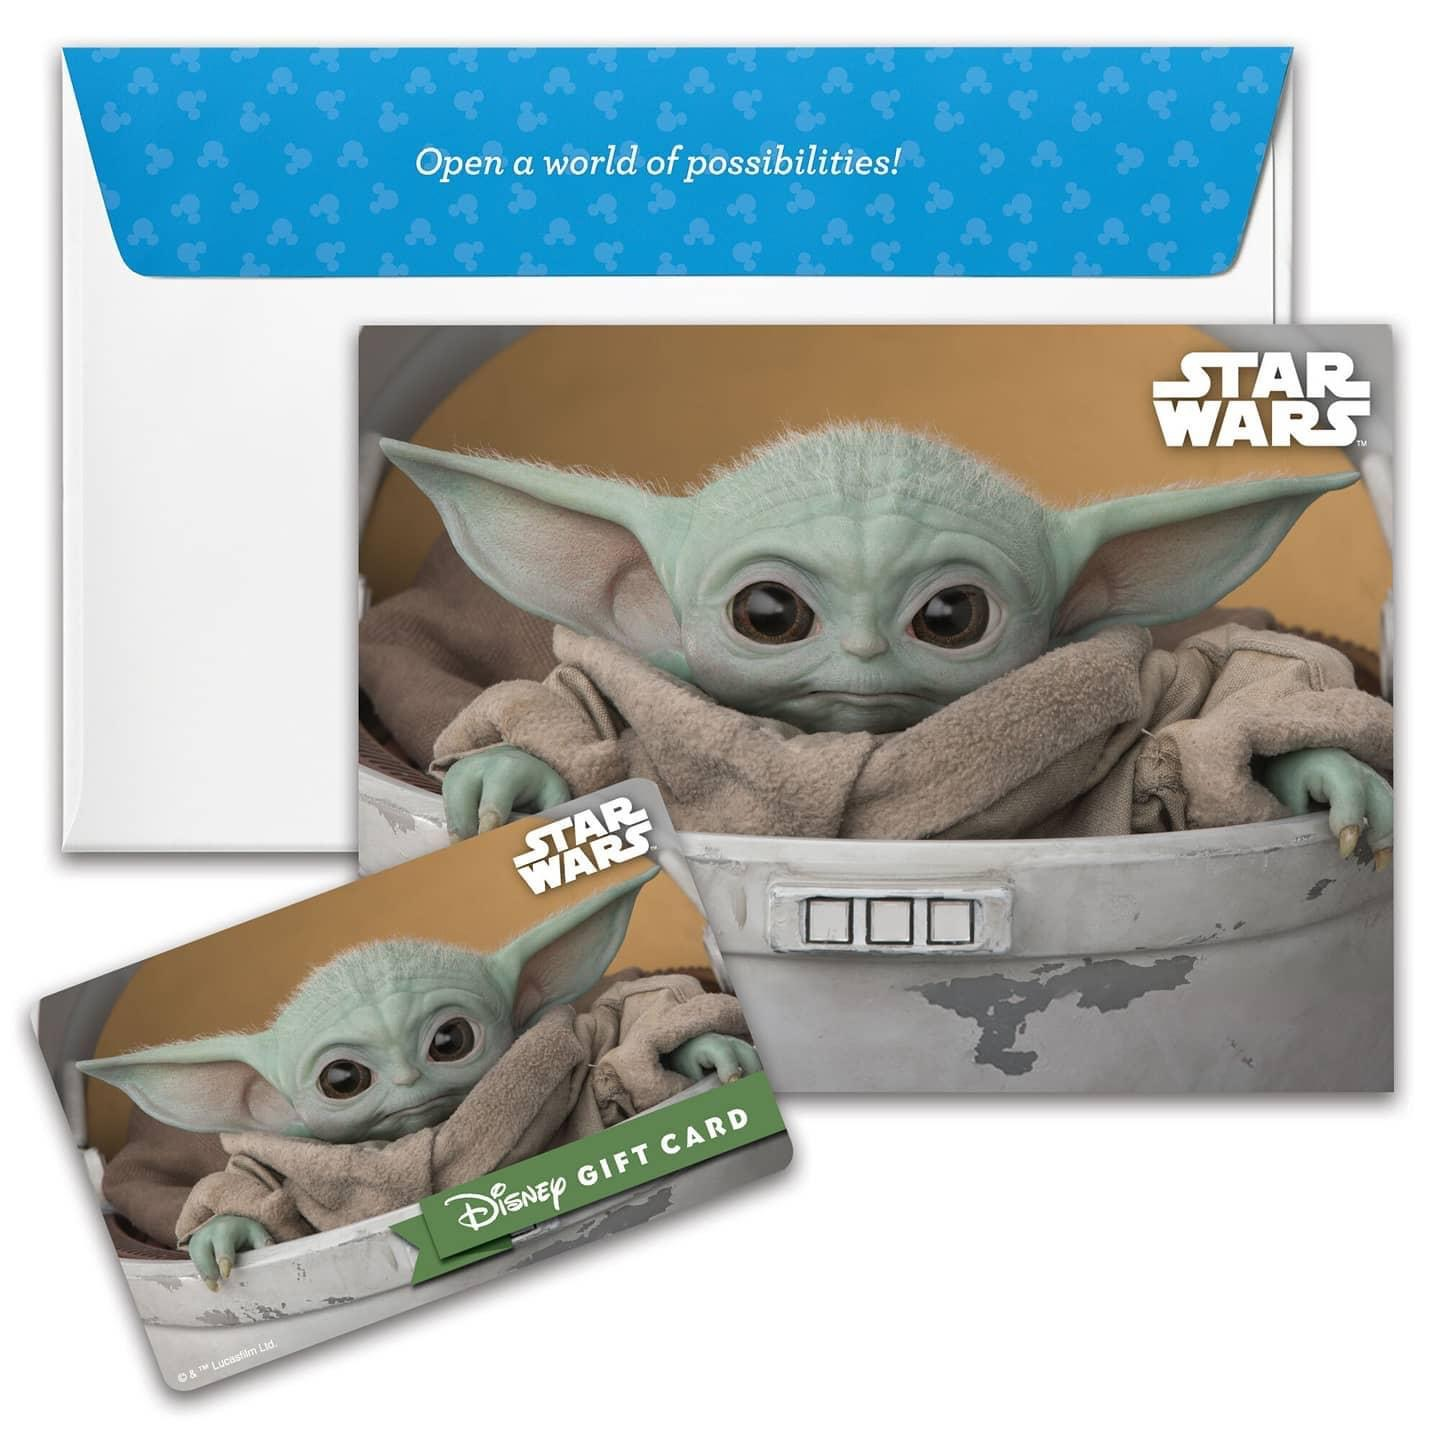 New Disney Gift Card Designs for Your Holiday Gift Giving from shopDisney! 11